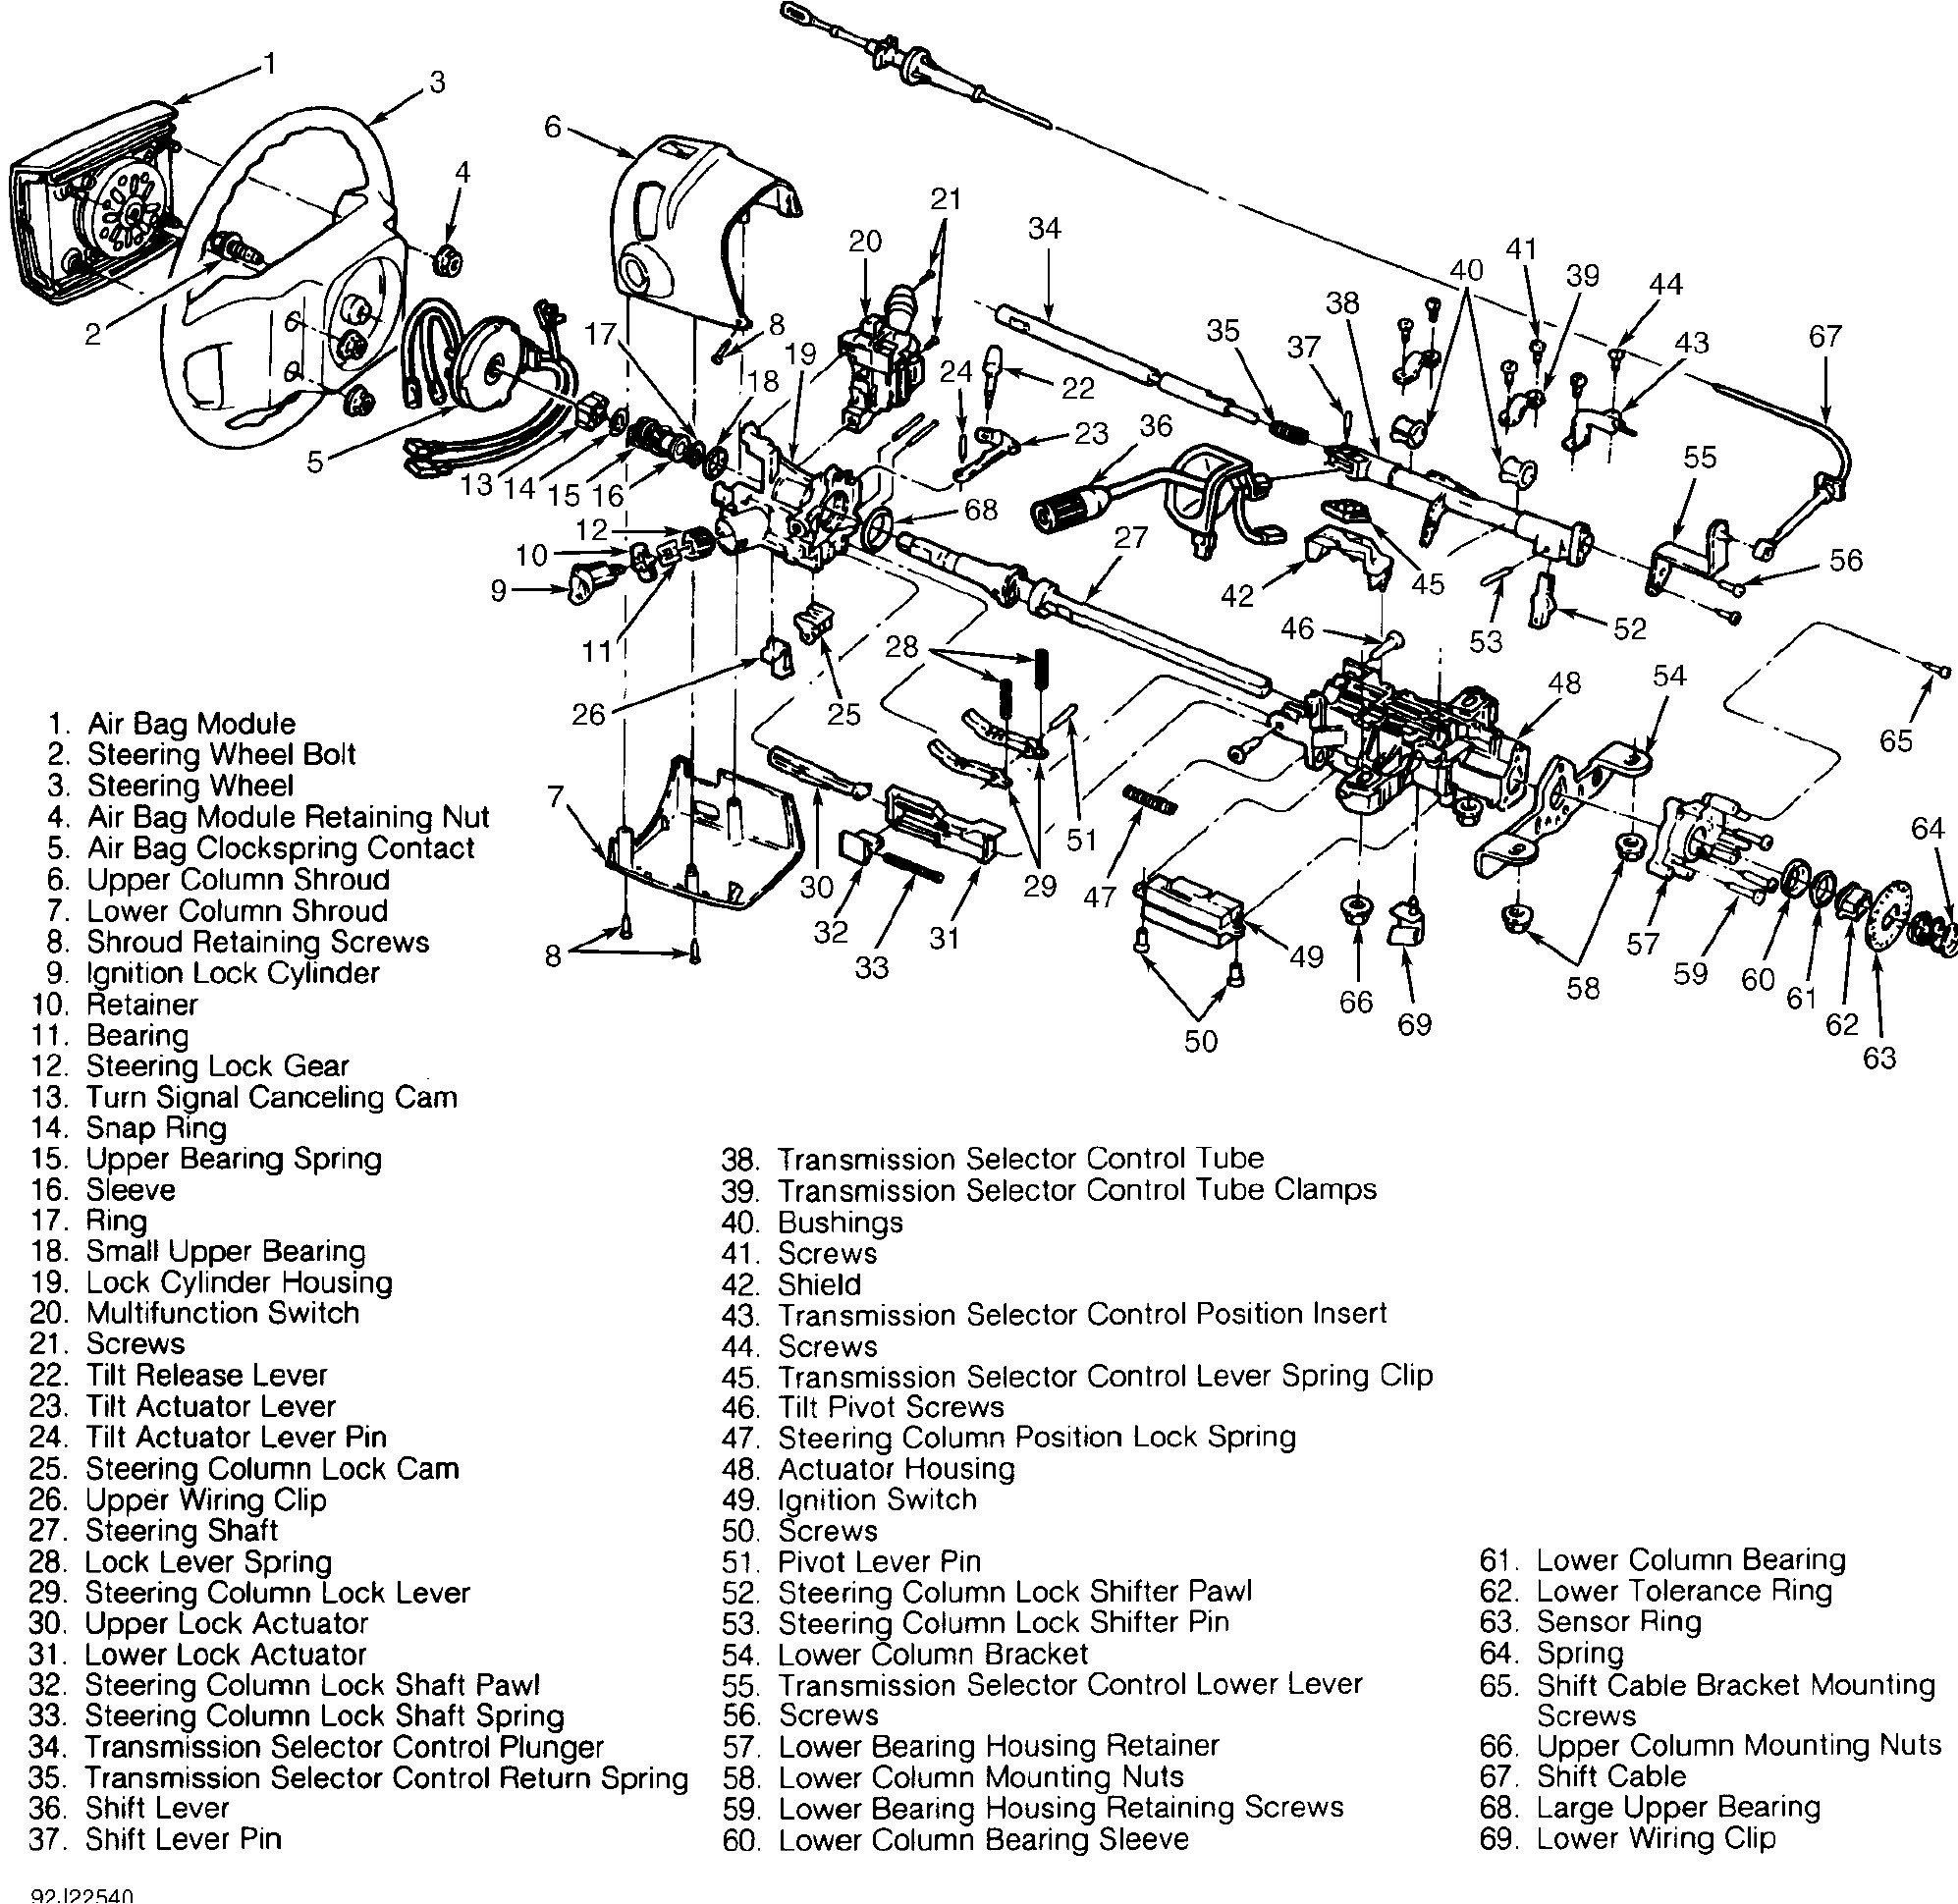 1997 Ford F 350 Steering Column Diagram Wiring Diagram Schema Form Track A Form Track A Atmosphereconcept It